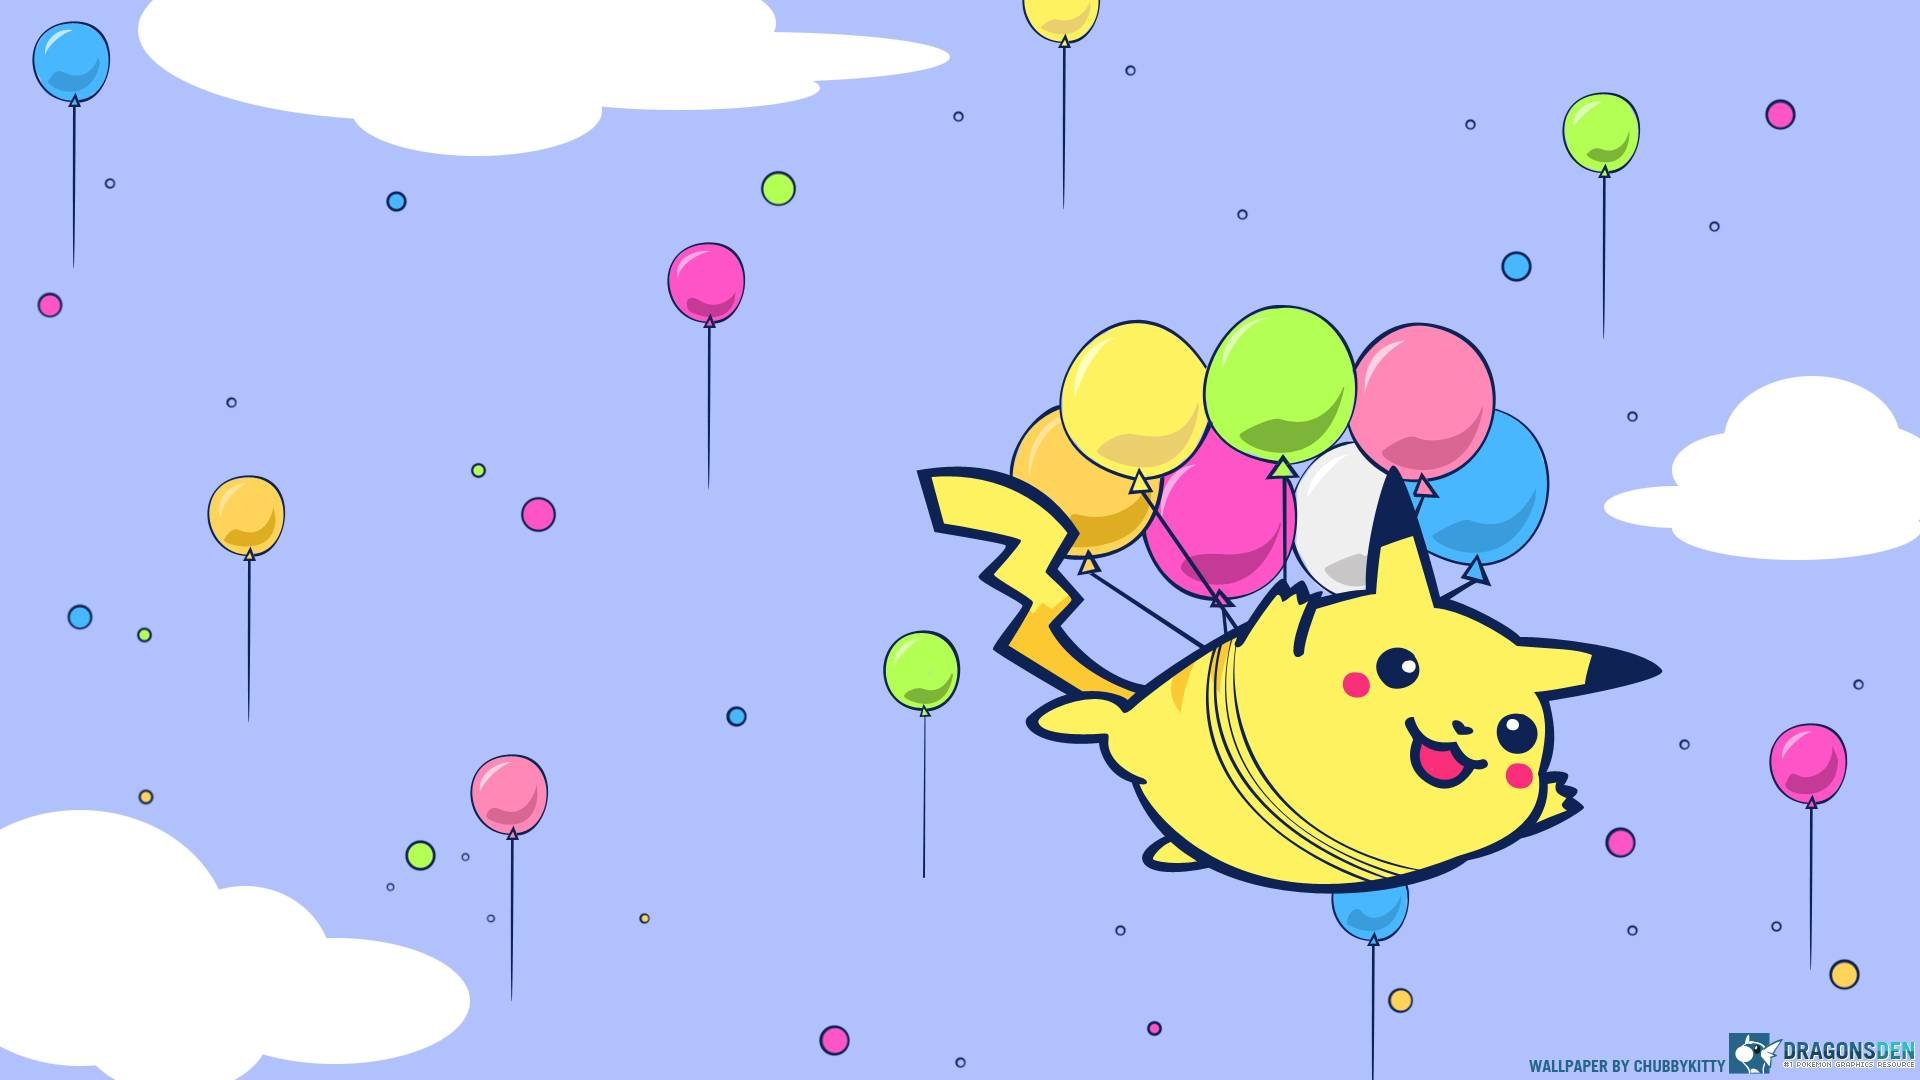 Pikachu Wallpaper Wallpaper of Pikachu and Balloons 1920x1080